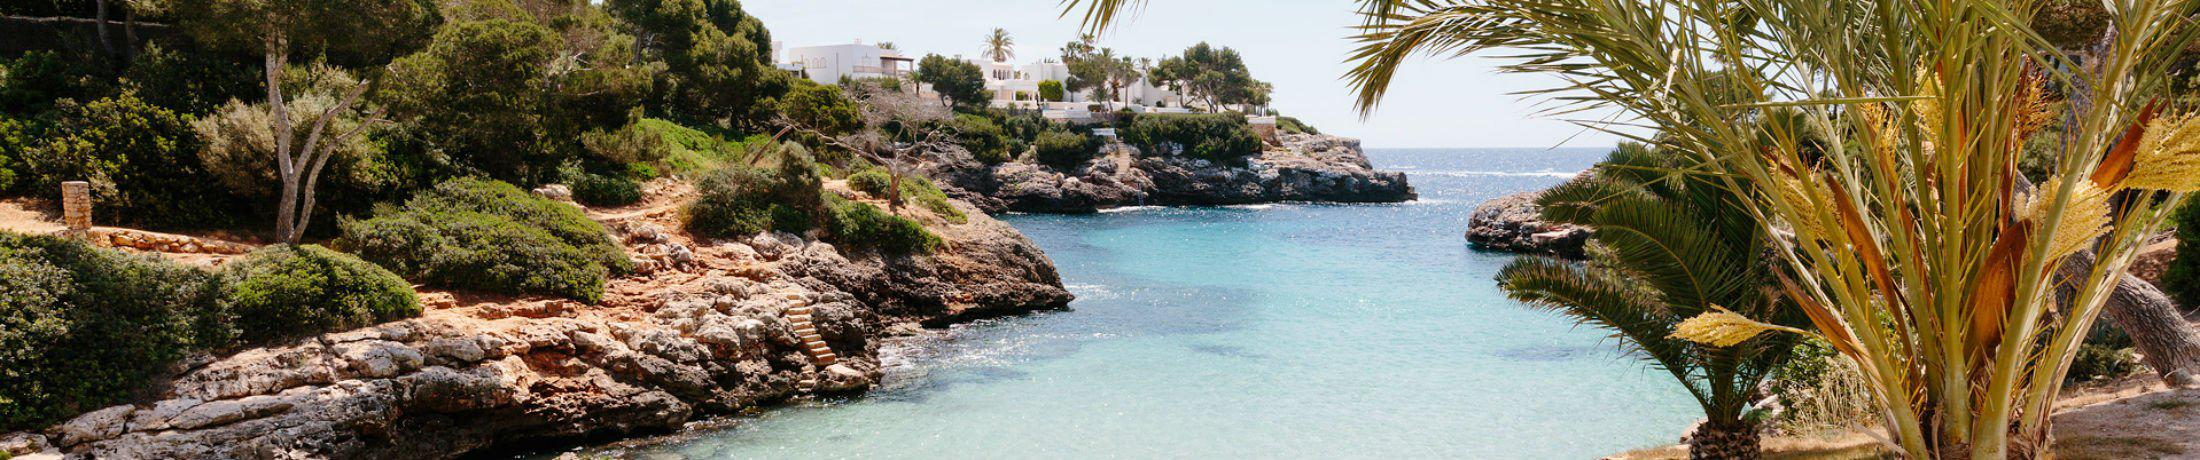 Mapa AluaSoul Mallorca Resort (Adults Only) Hotel Cala d'Or, Mallorca